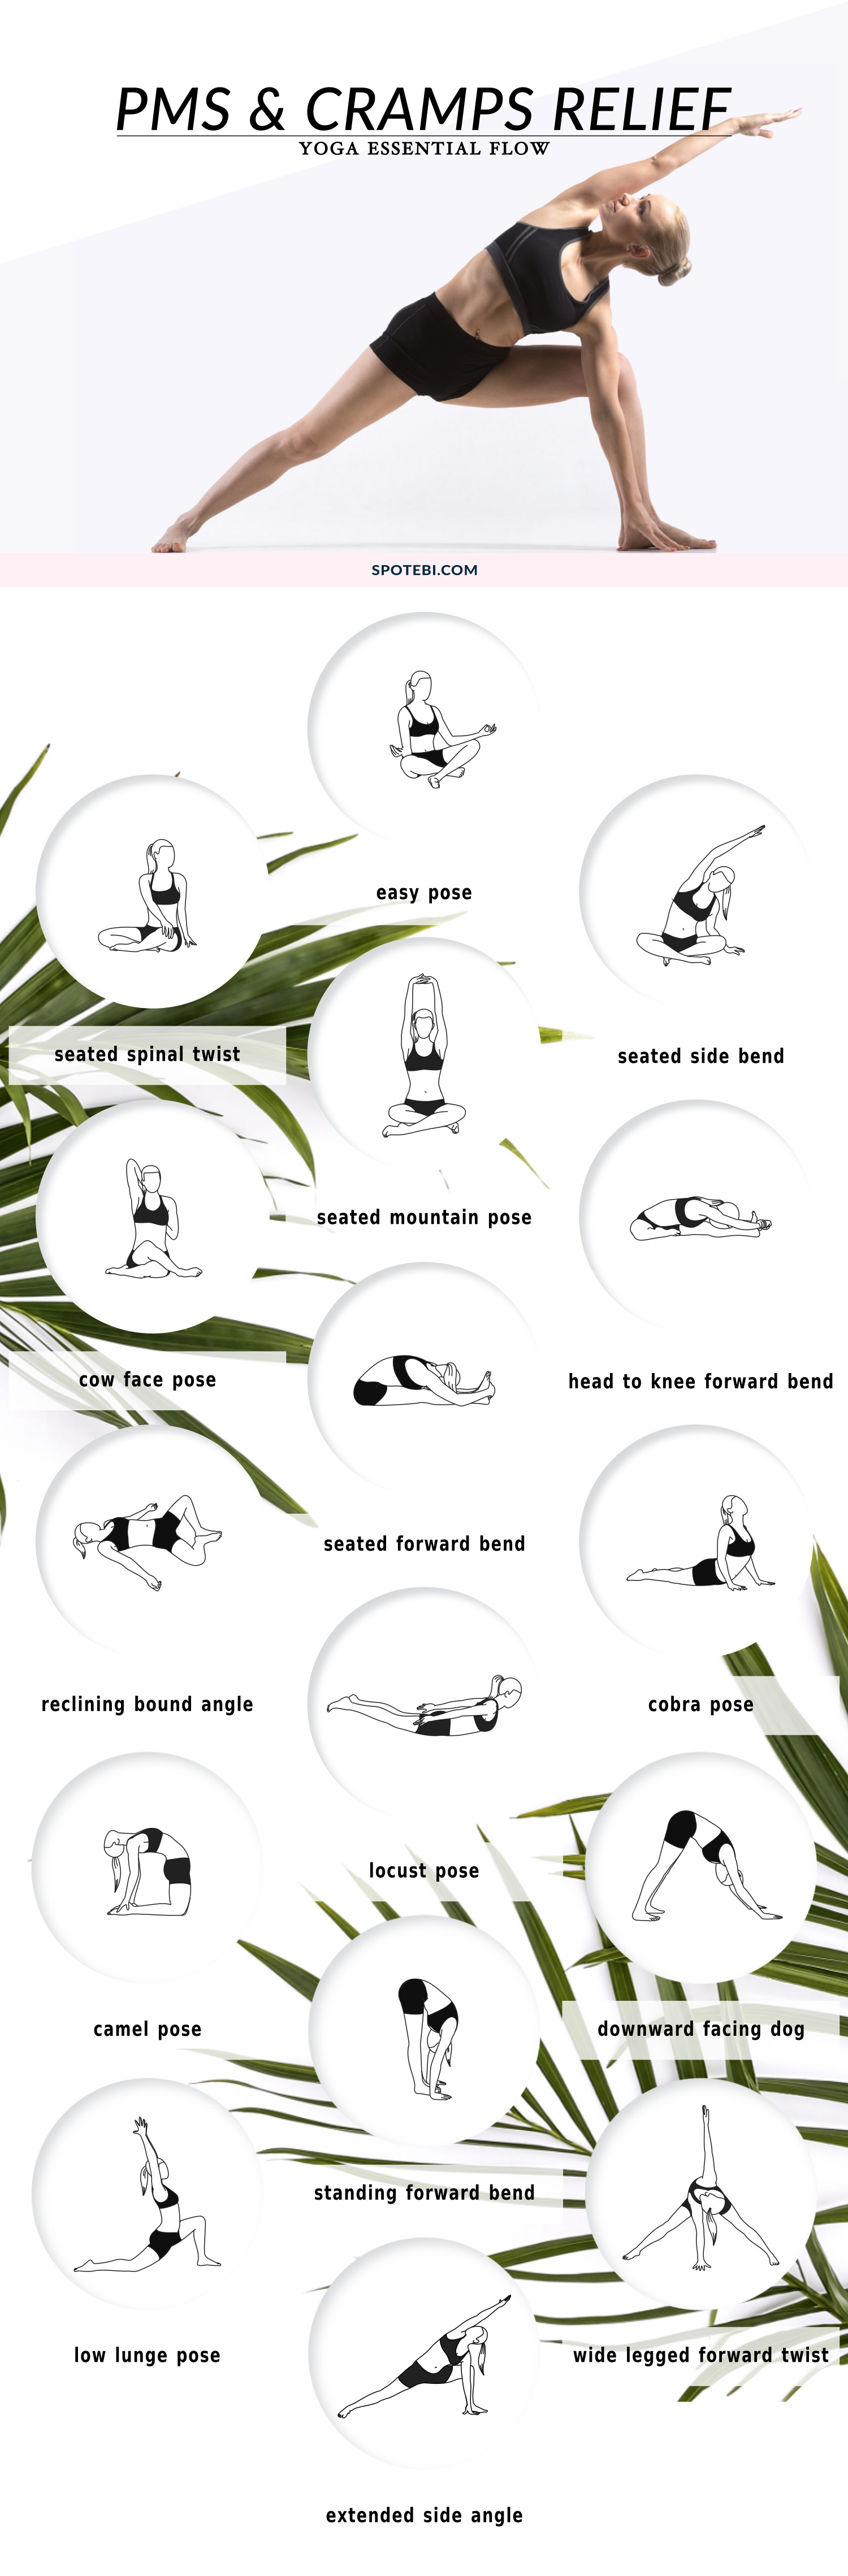 Relieve PMS symptoms and ease cramps with this 13-minute yoga essential flow. A sequence of 16 yoga poses to help you strengthen the body, calm the mind and alleviate pain caused by menstrual cramps. https://www.spotebi.com/yoga-sequences/pms-cramps-relief-flow/